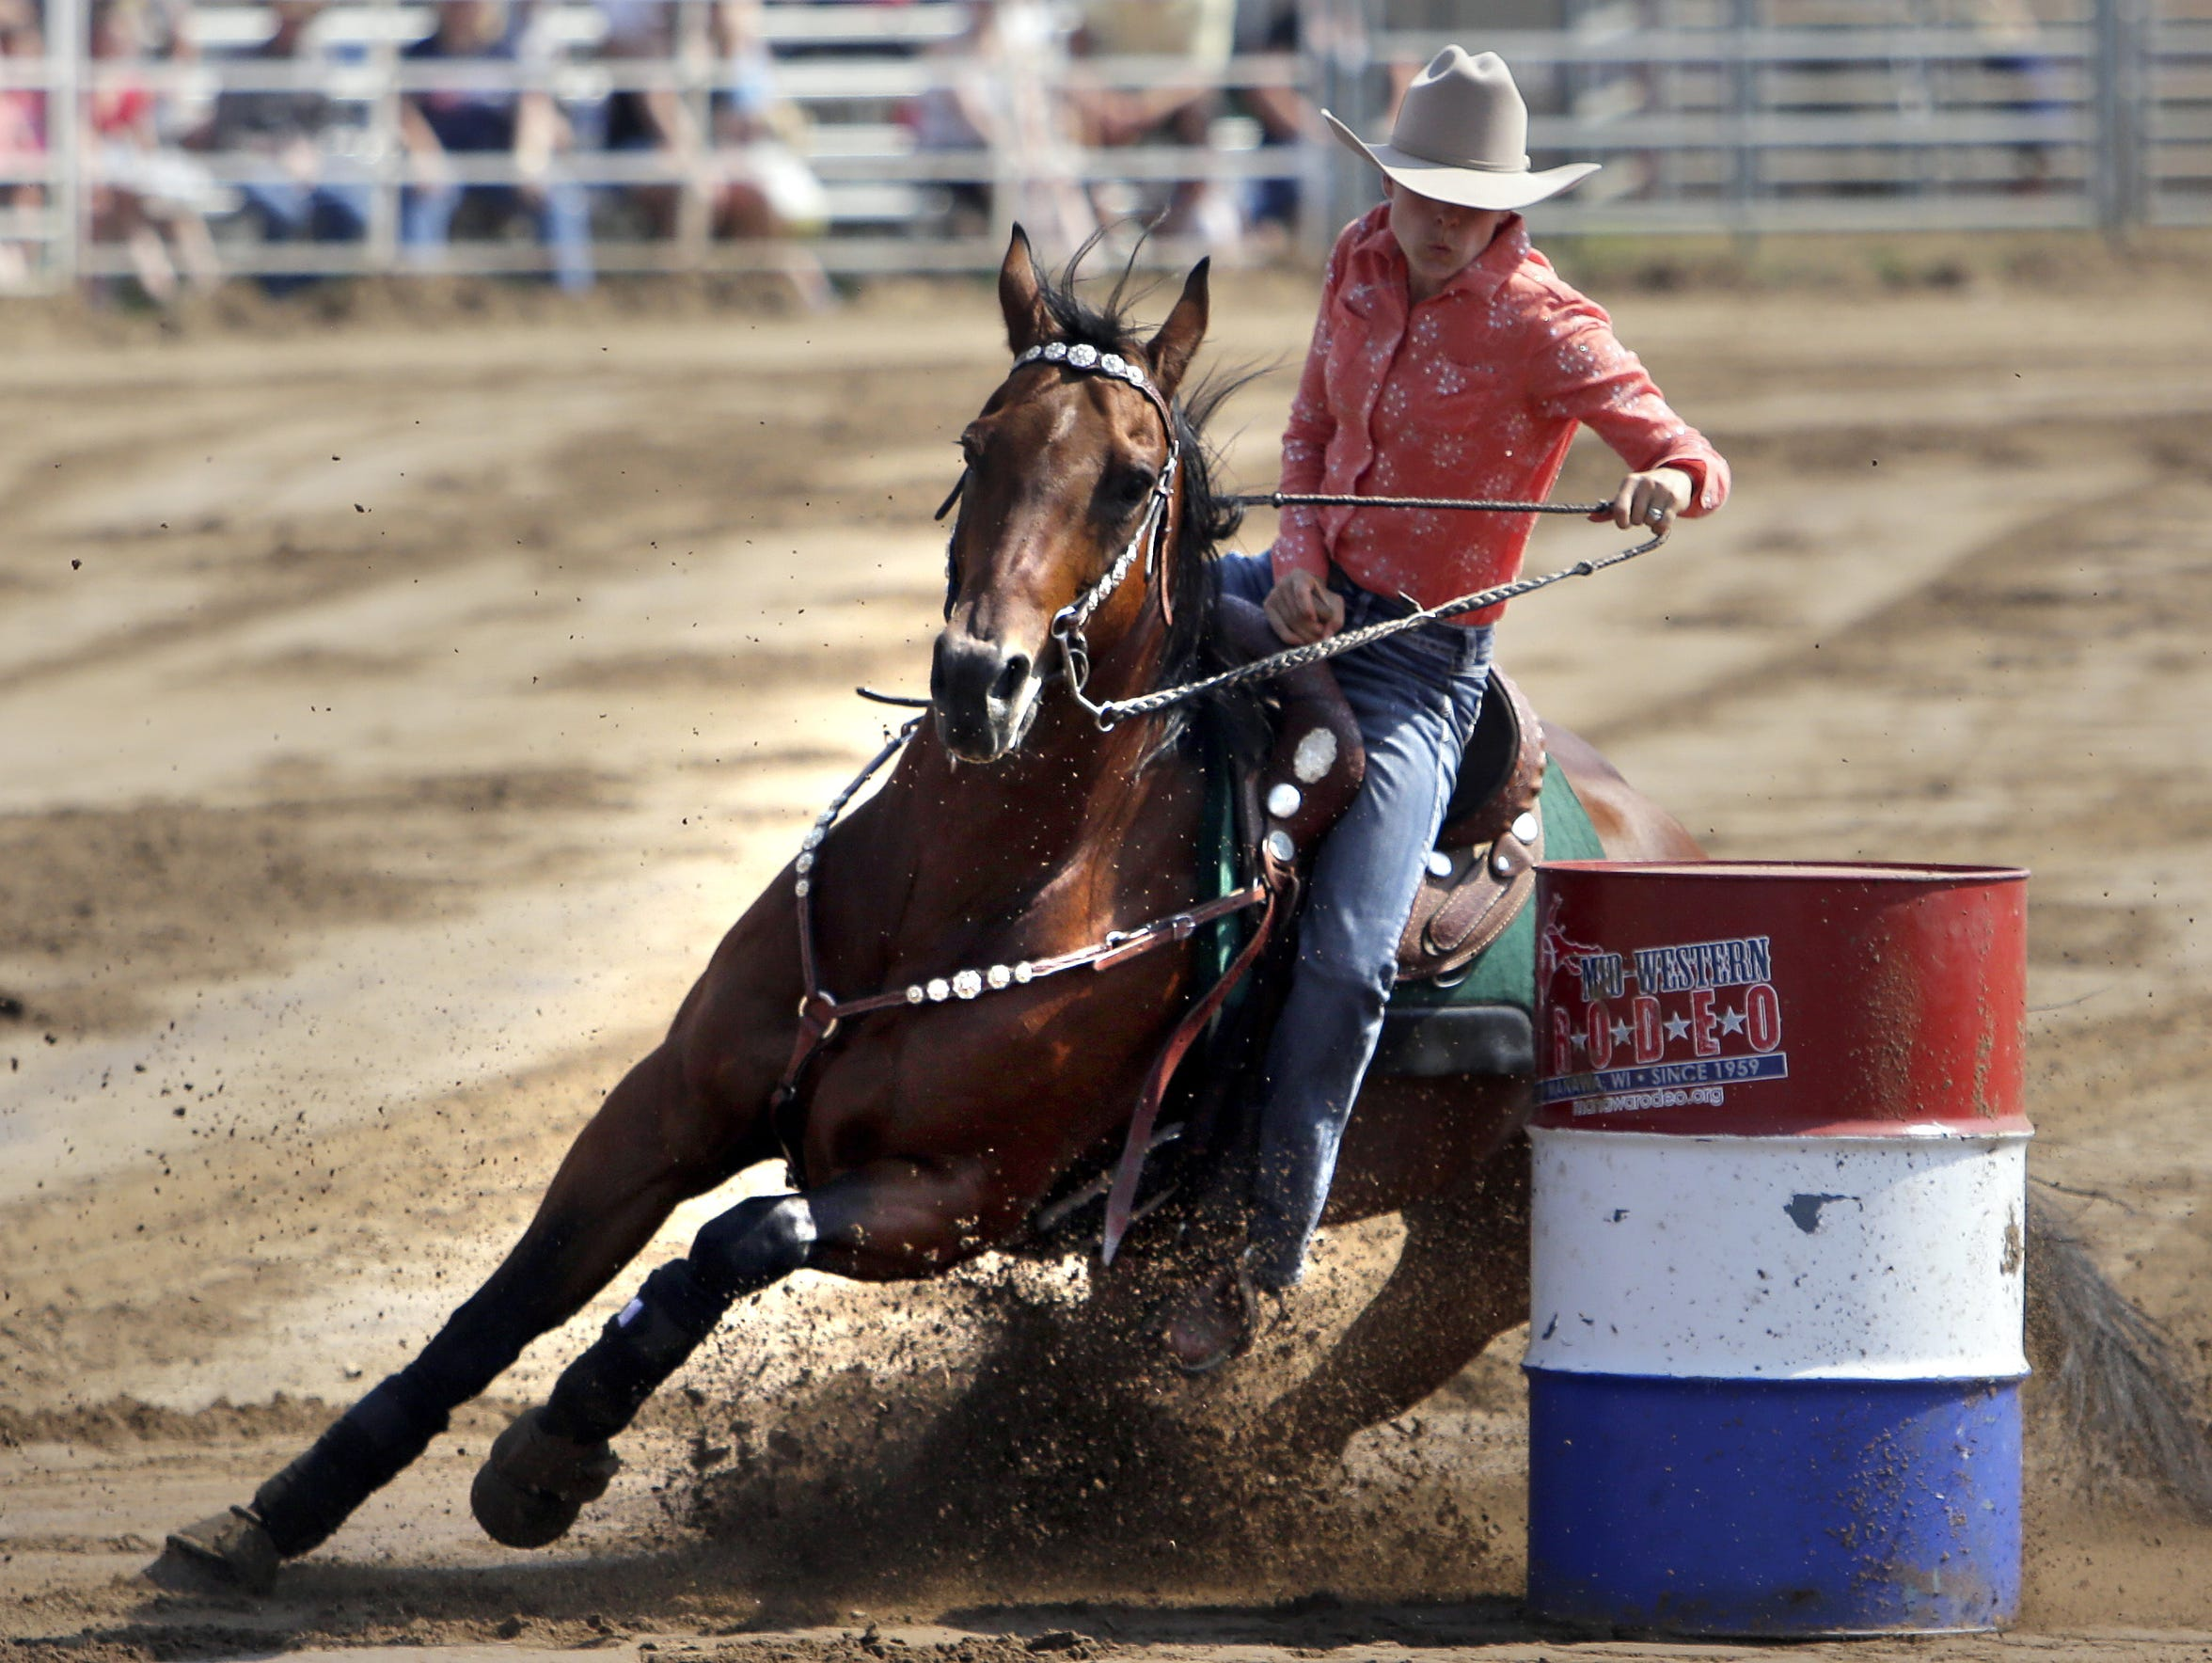 The Mid-Western Rodeo returns this summer in Manawa.